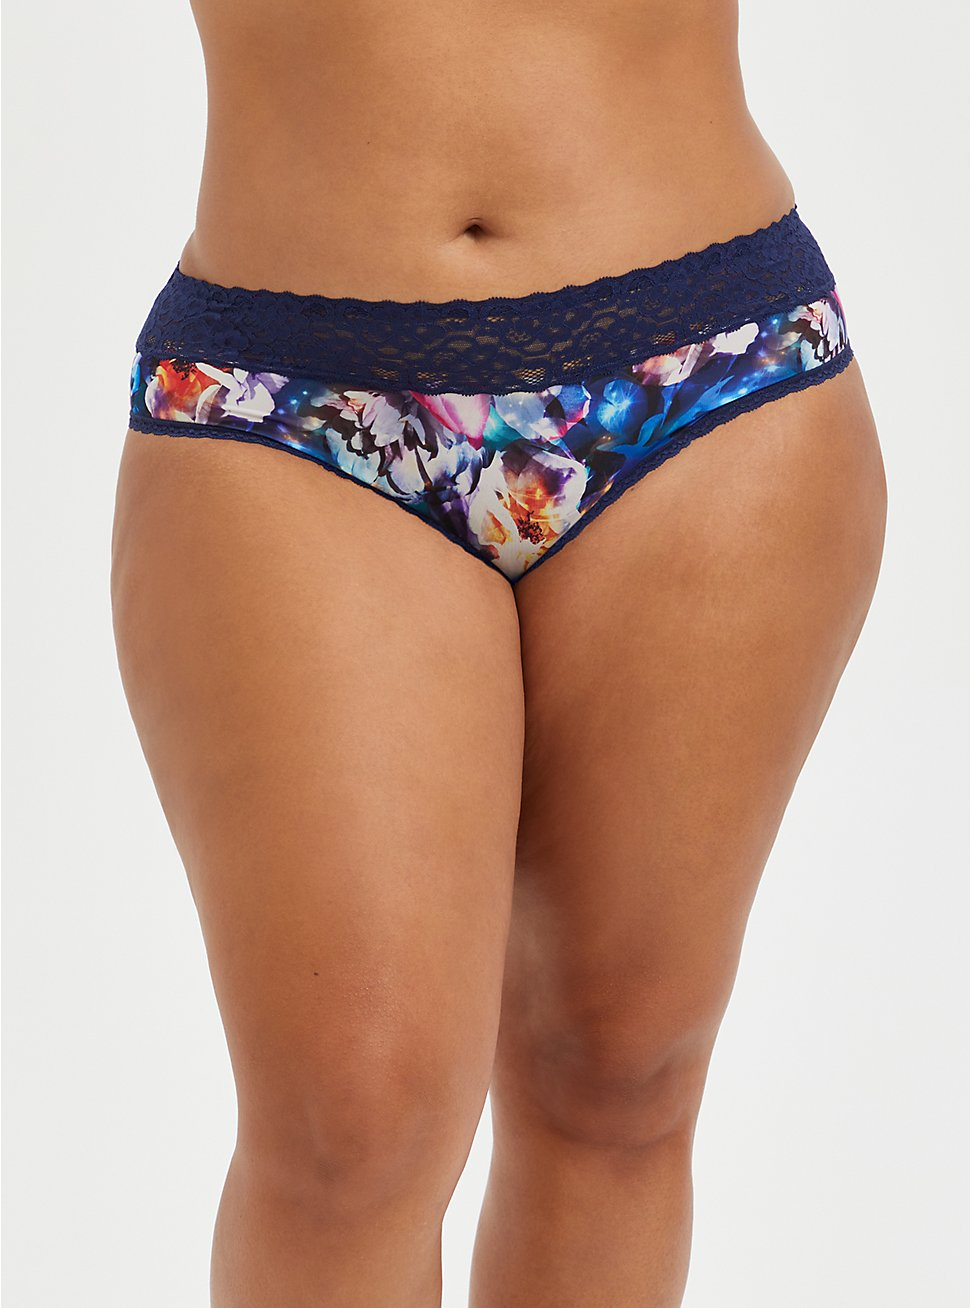 Second Skin Hipster Panty - Lace Galaxy Blue, FLORAL IN GALAXY, hi-res